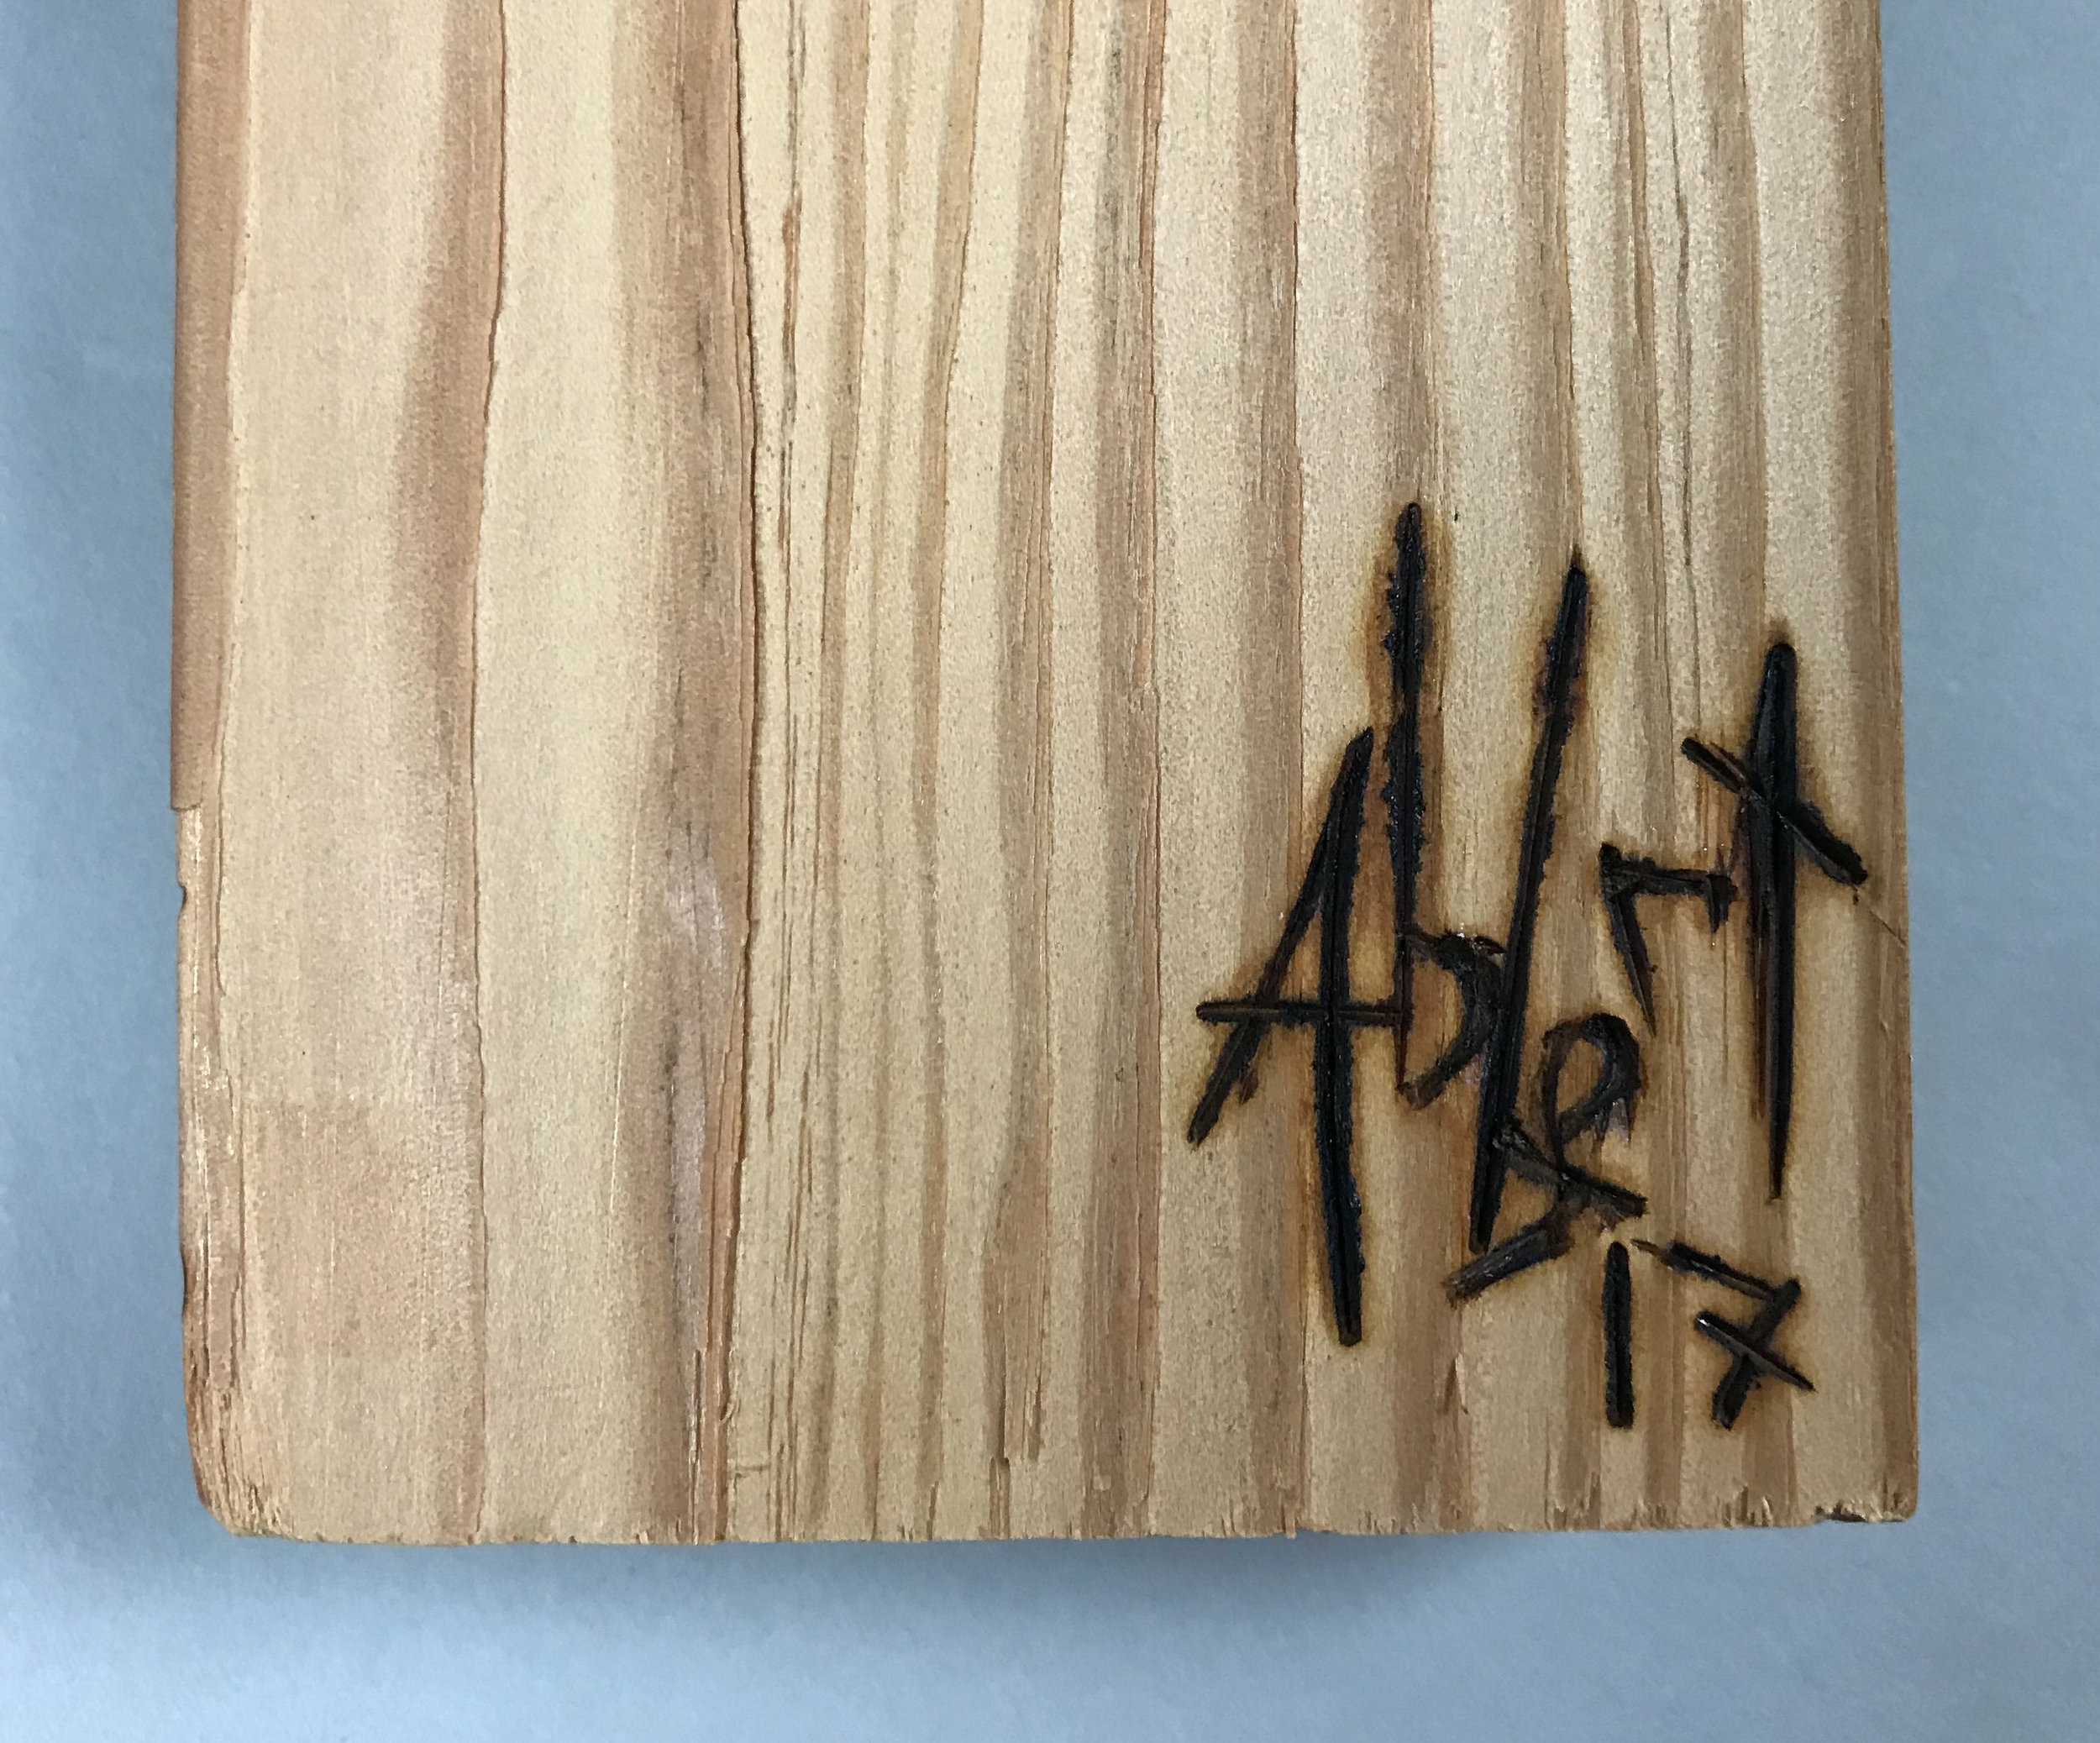 Most pieces are signed with wood burner. Some painted on side and back.